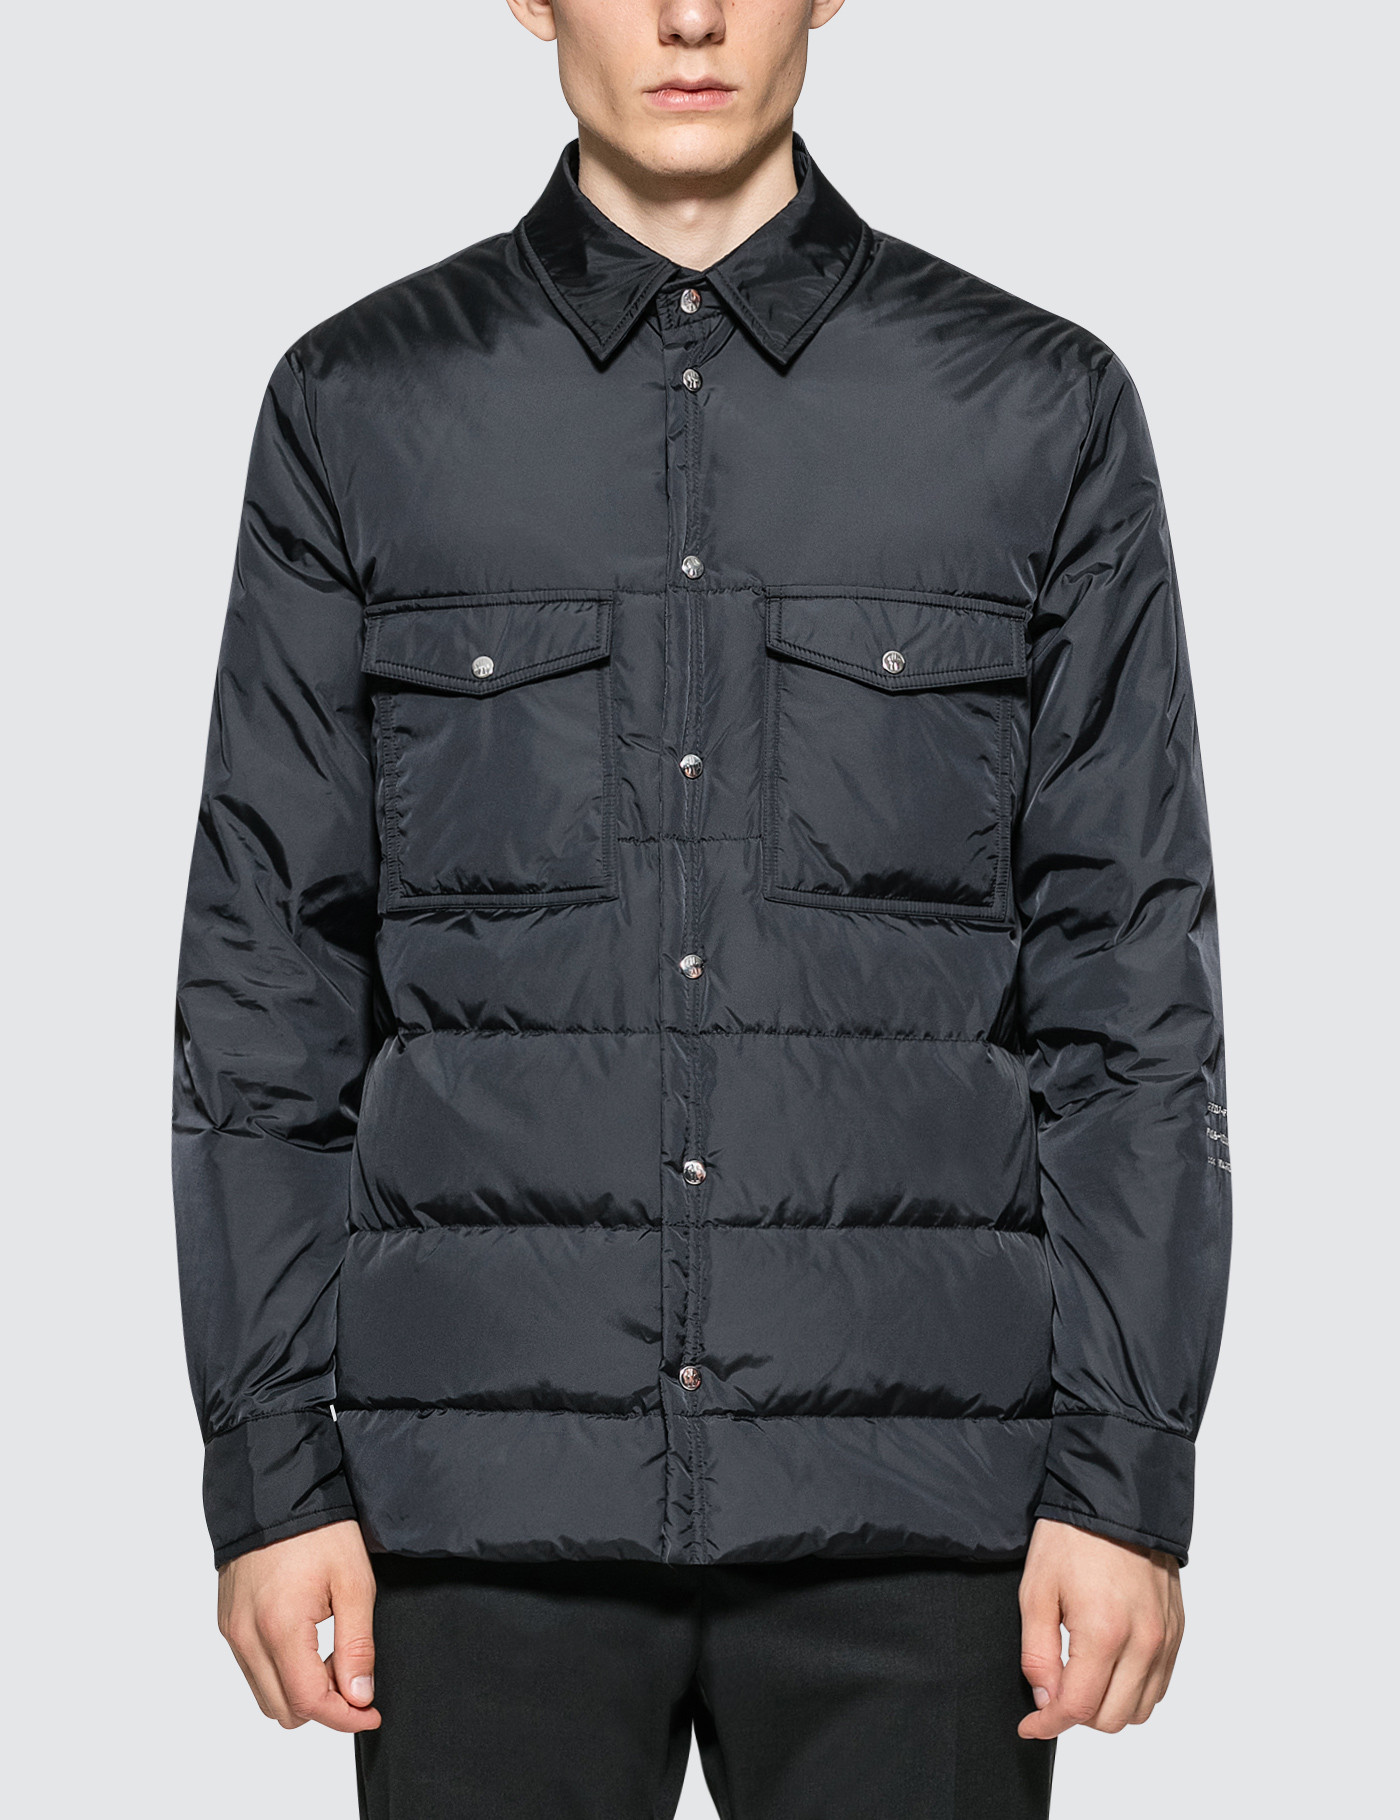 reputable site 0f9aa 5157f Maze Giubbotto, Moncler Genius